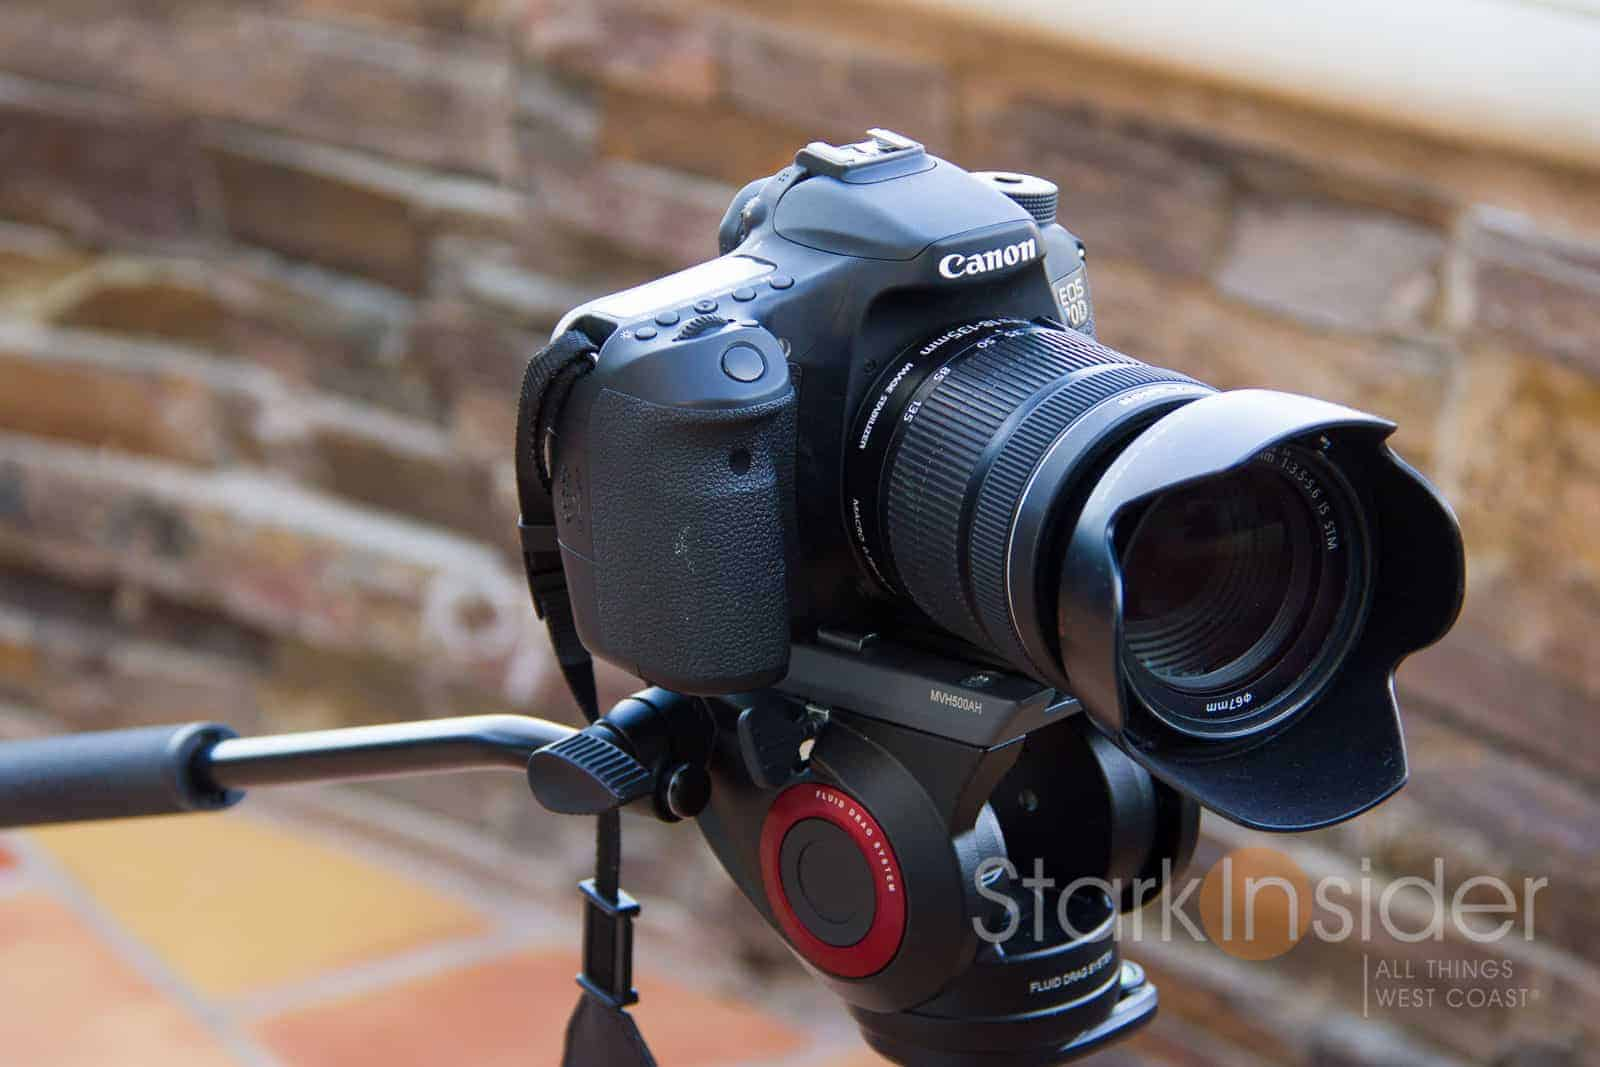 The best lens for shooting video with a Canon DSLR camera